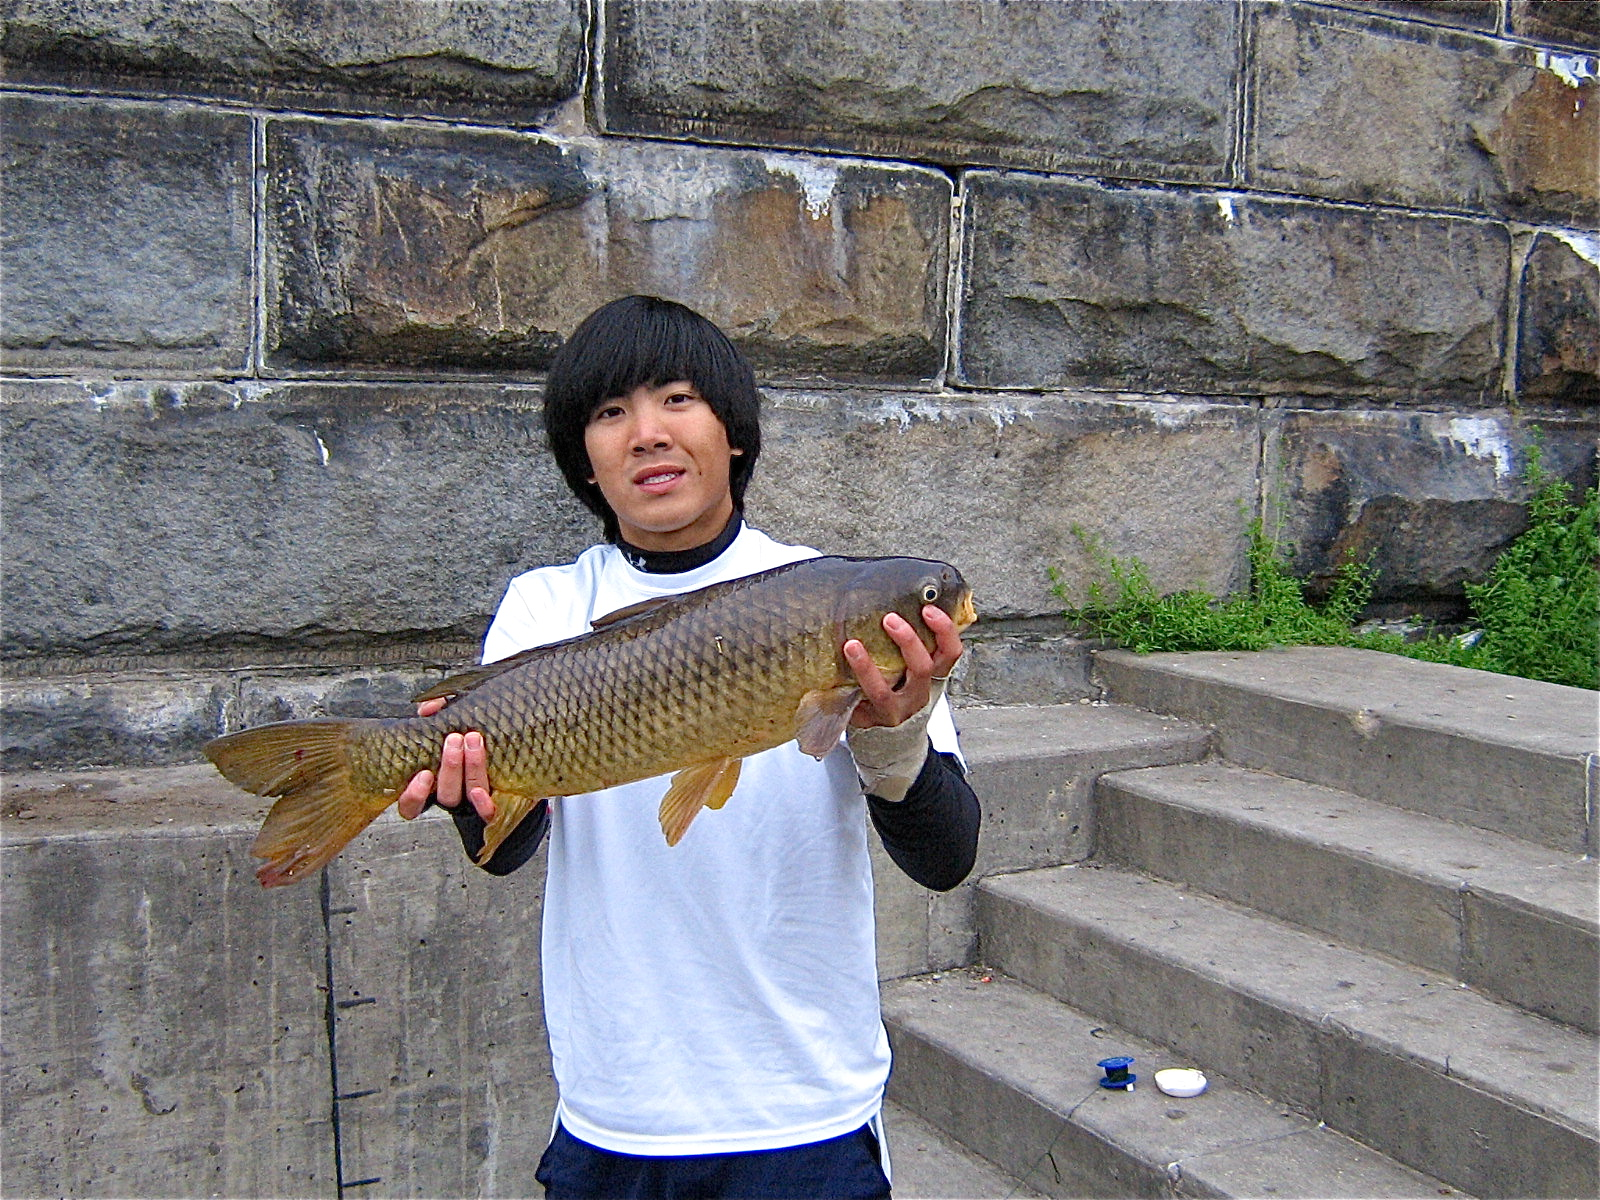 Extreme philly fishing reports mike h fairmount dam pa for Extreme philly fishing